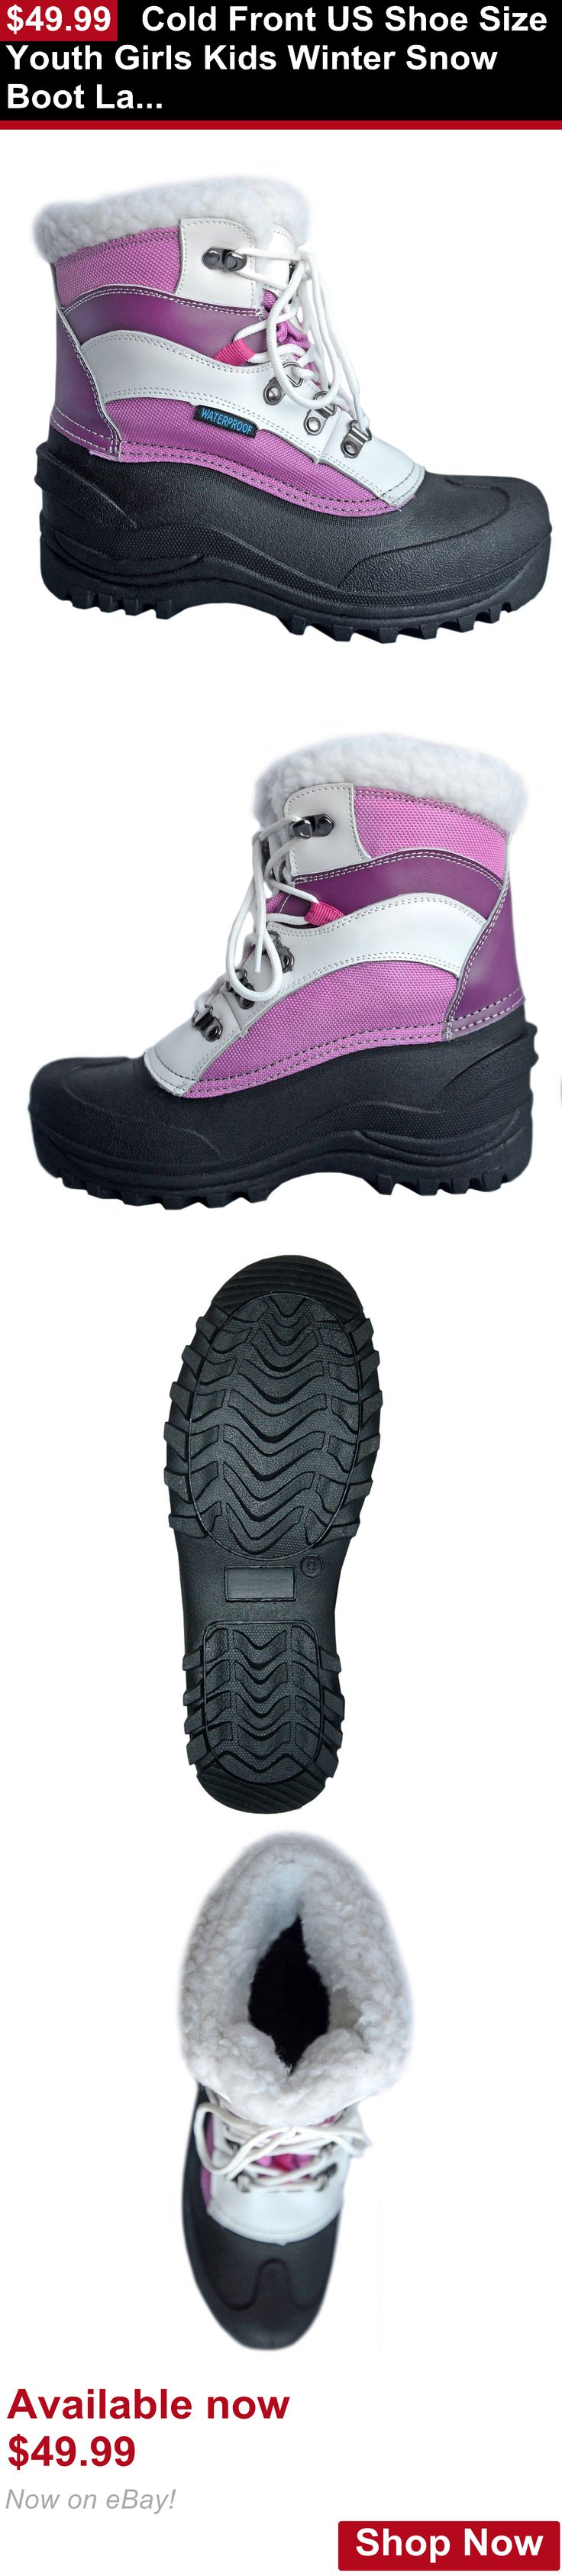 Children girls clothing shoes and accessories: Cold Front Us Shoe Size Youth Girls Kids Winter Snow Boot Lavender White Lace Up BUY IT NOW ONLY: $49.99